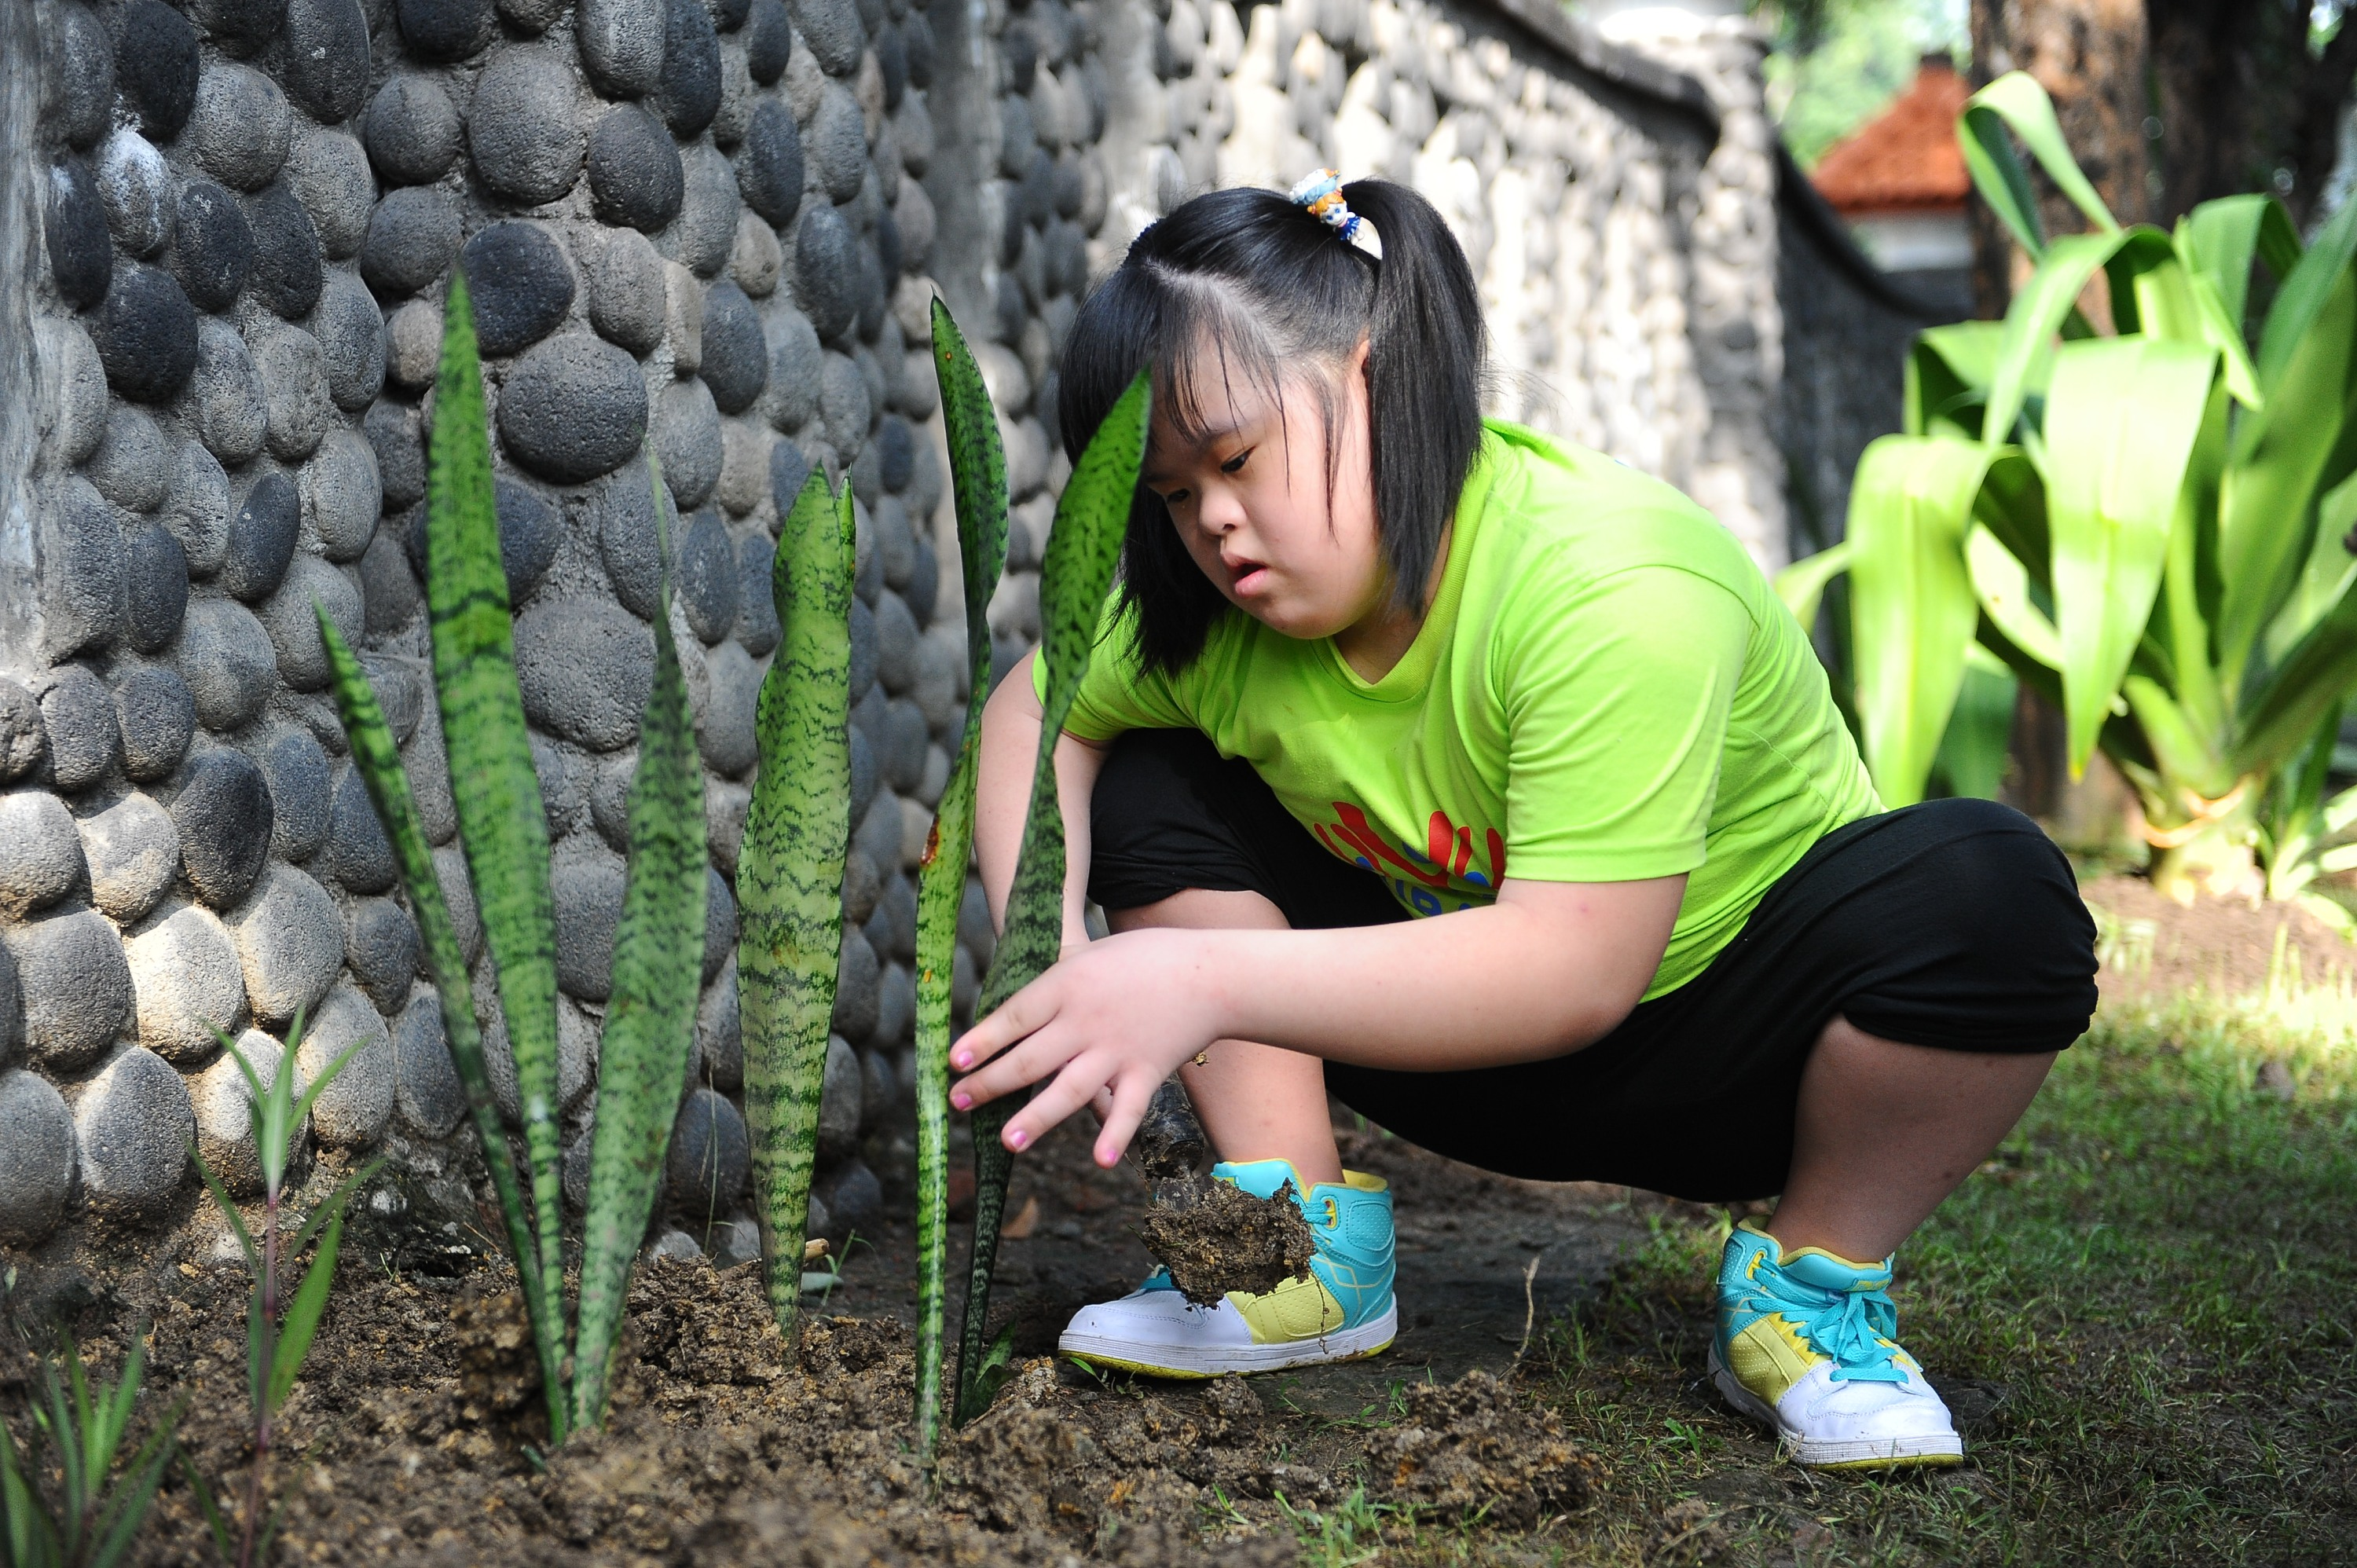 A girl with Down syndrome takes part in planting a tree during World Down Syndrome Day on March 21, 2014 in Surabaya, Indonesia.